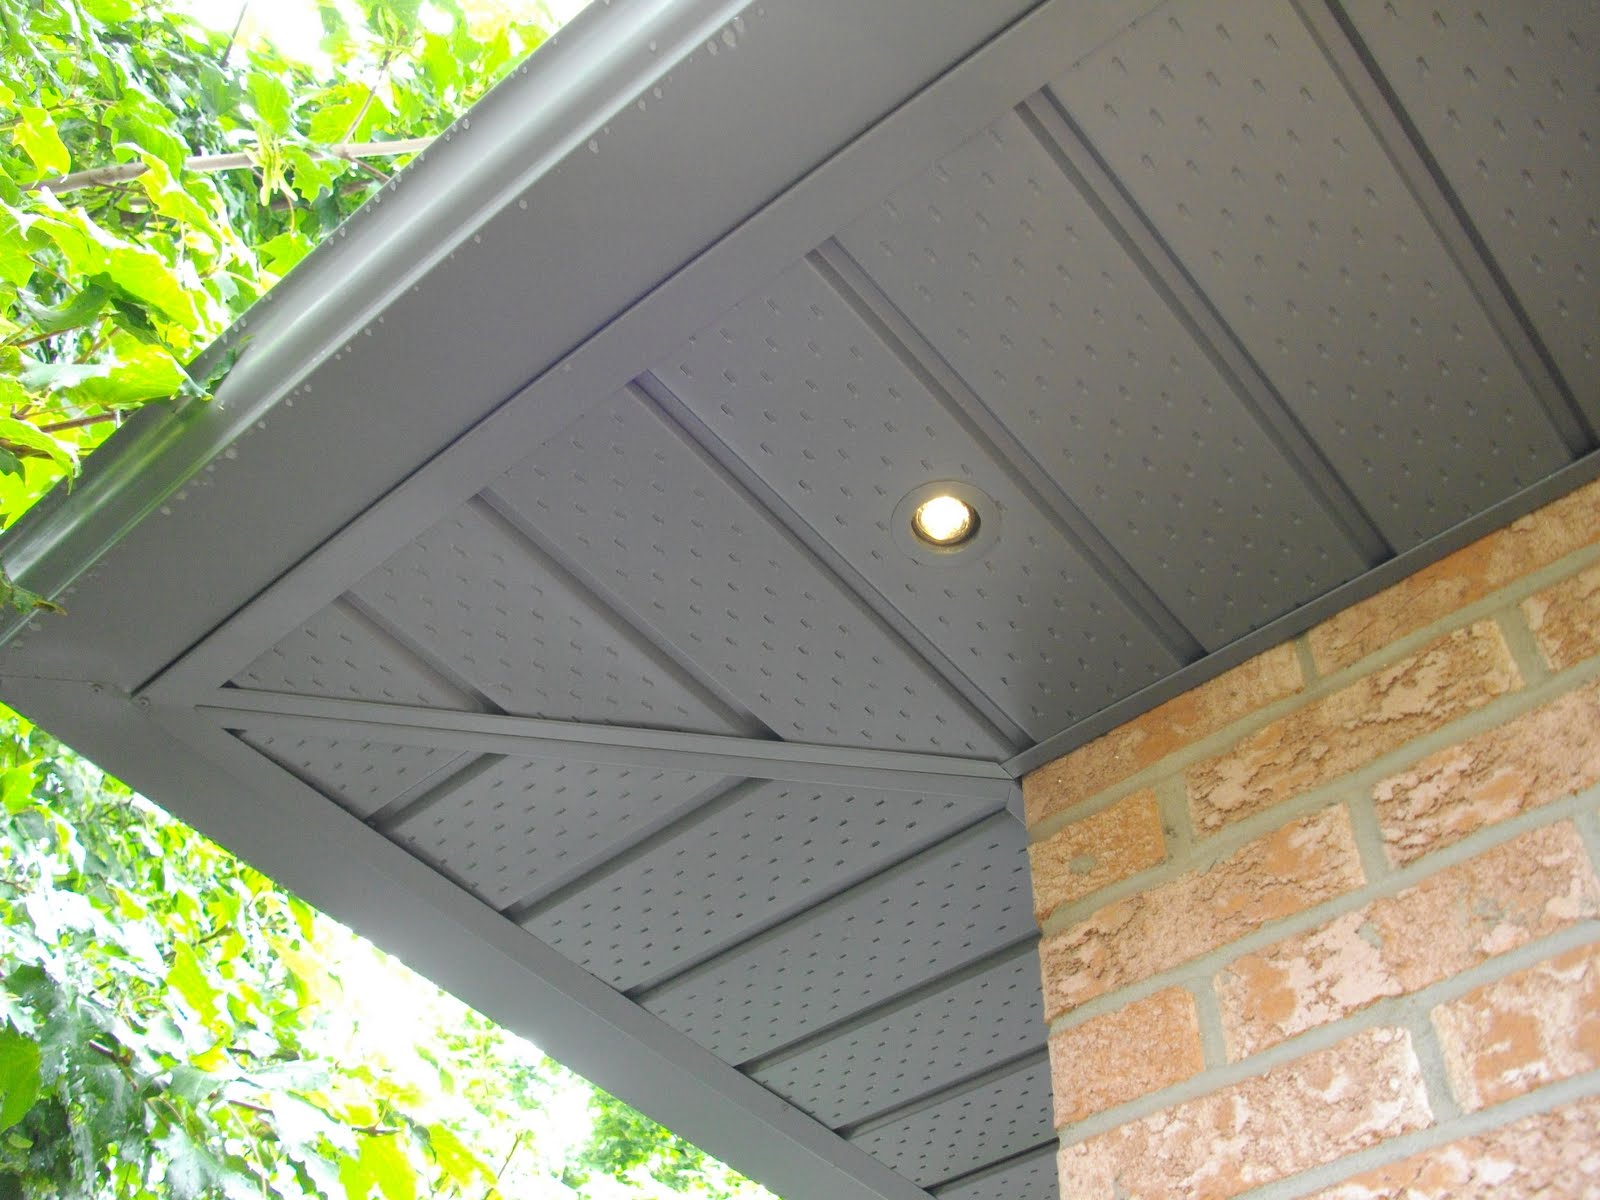 on how to light a basic entrance and run wiring in existing soffits